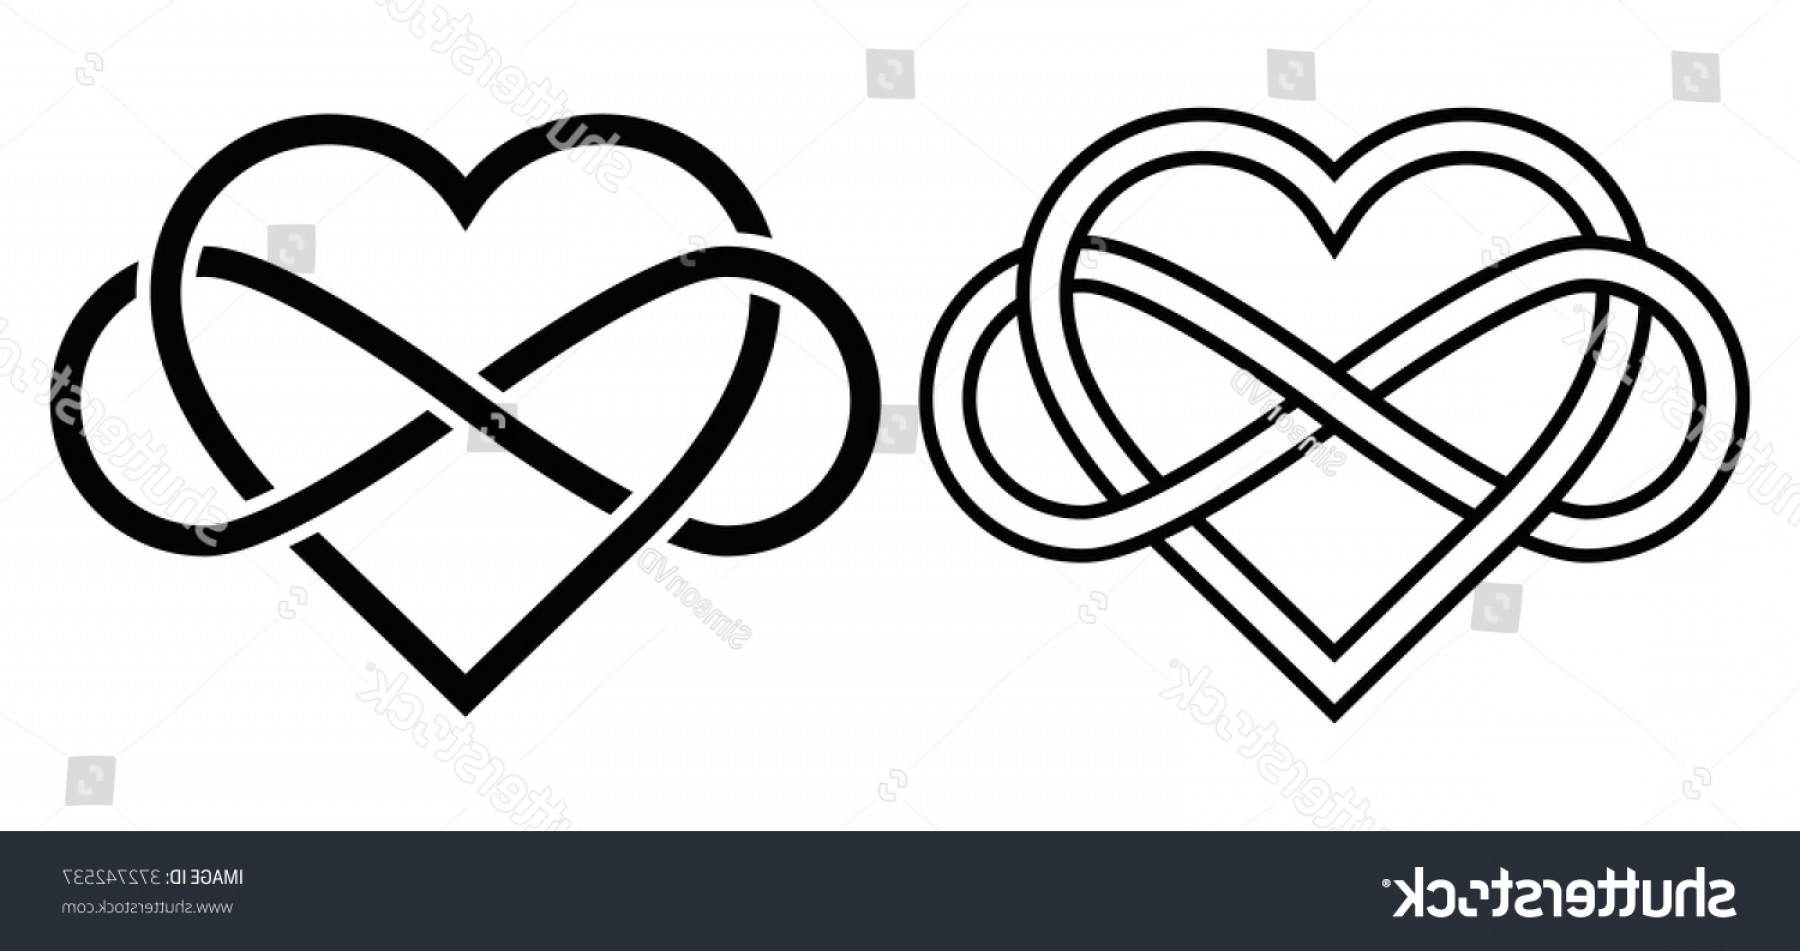 Infinity Heart Tattoo Vector: Intertwined Heart Sign Infinity Love Forever